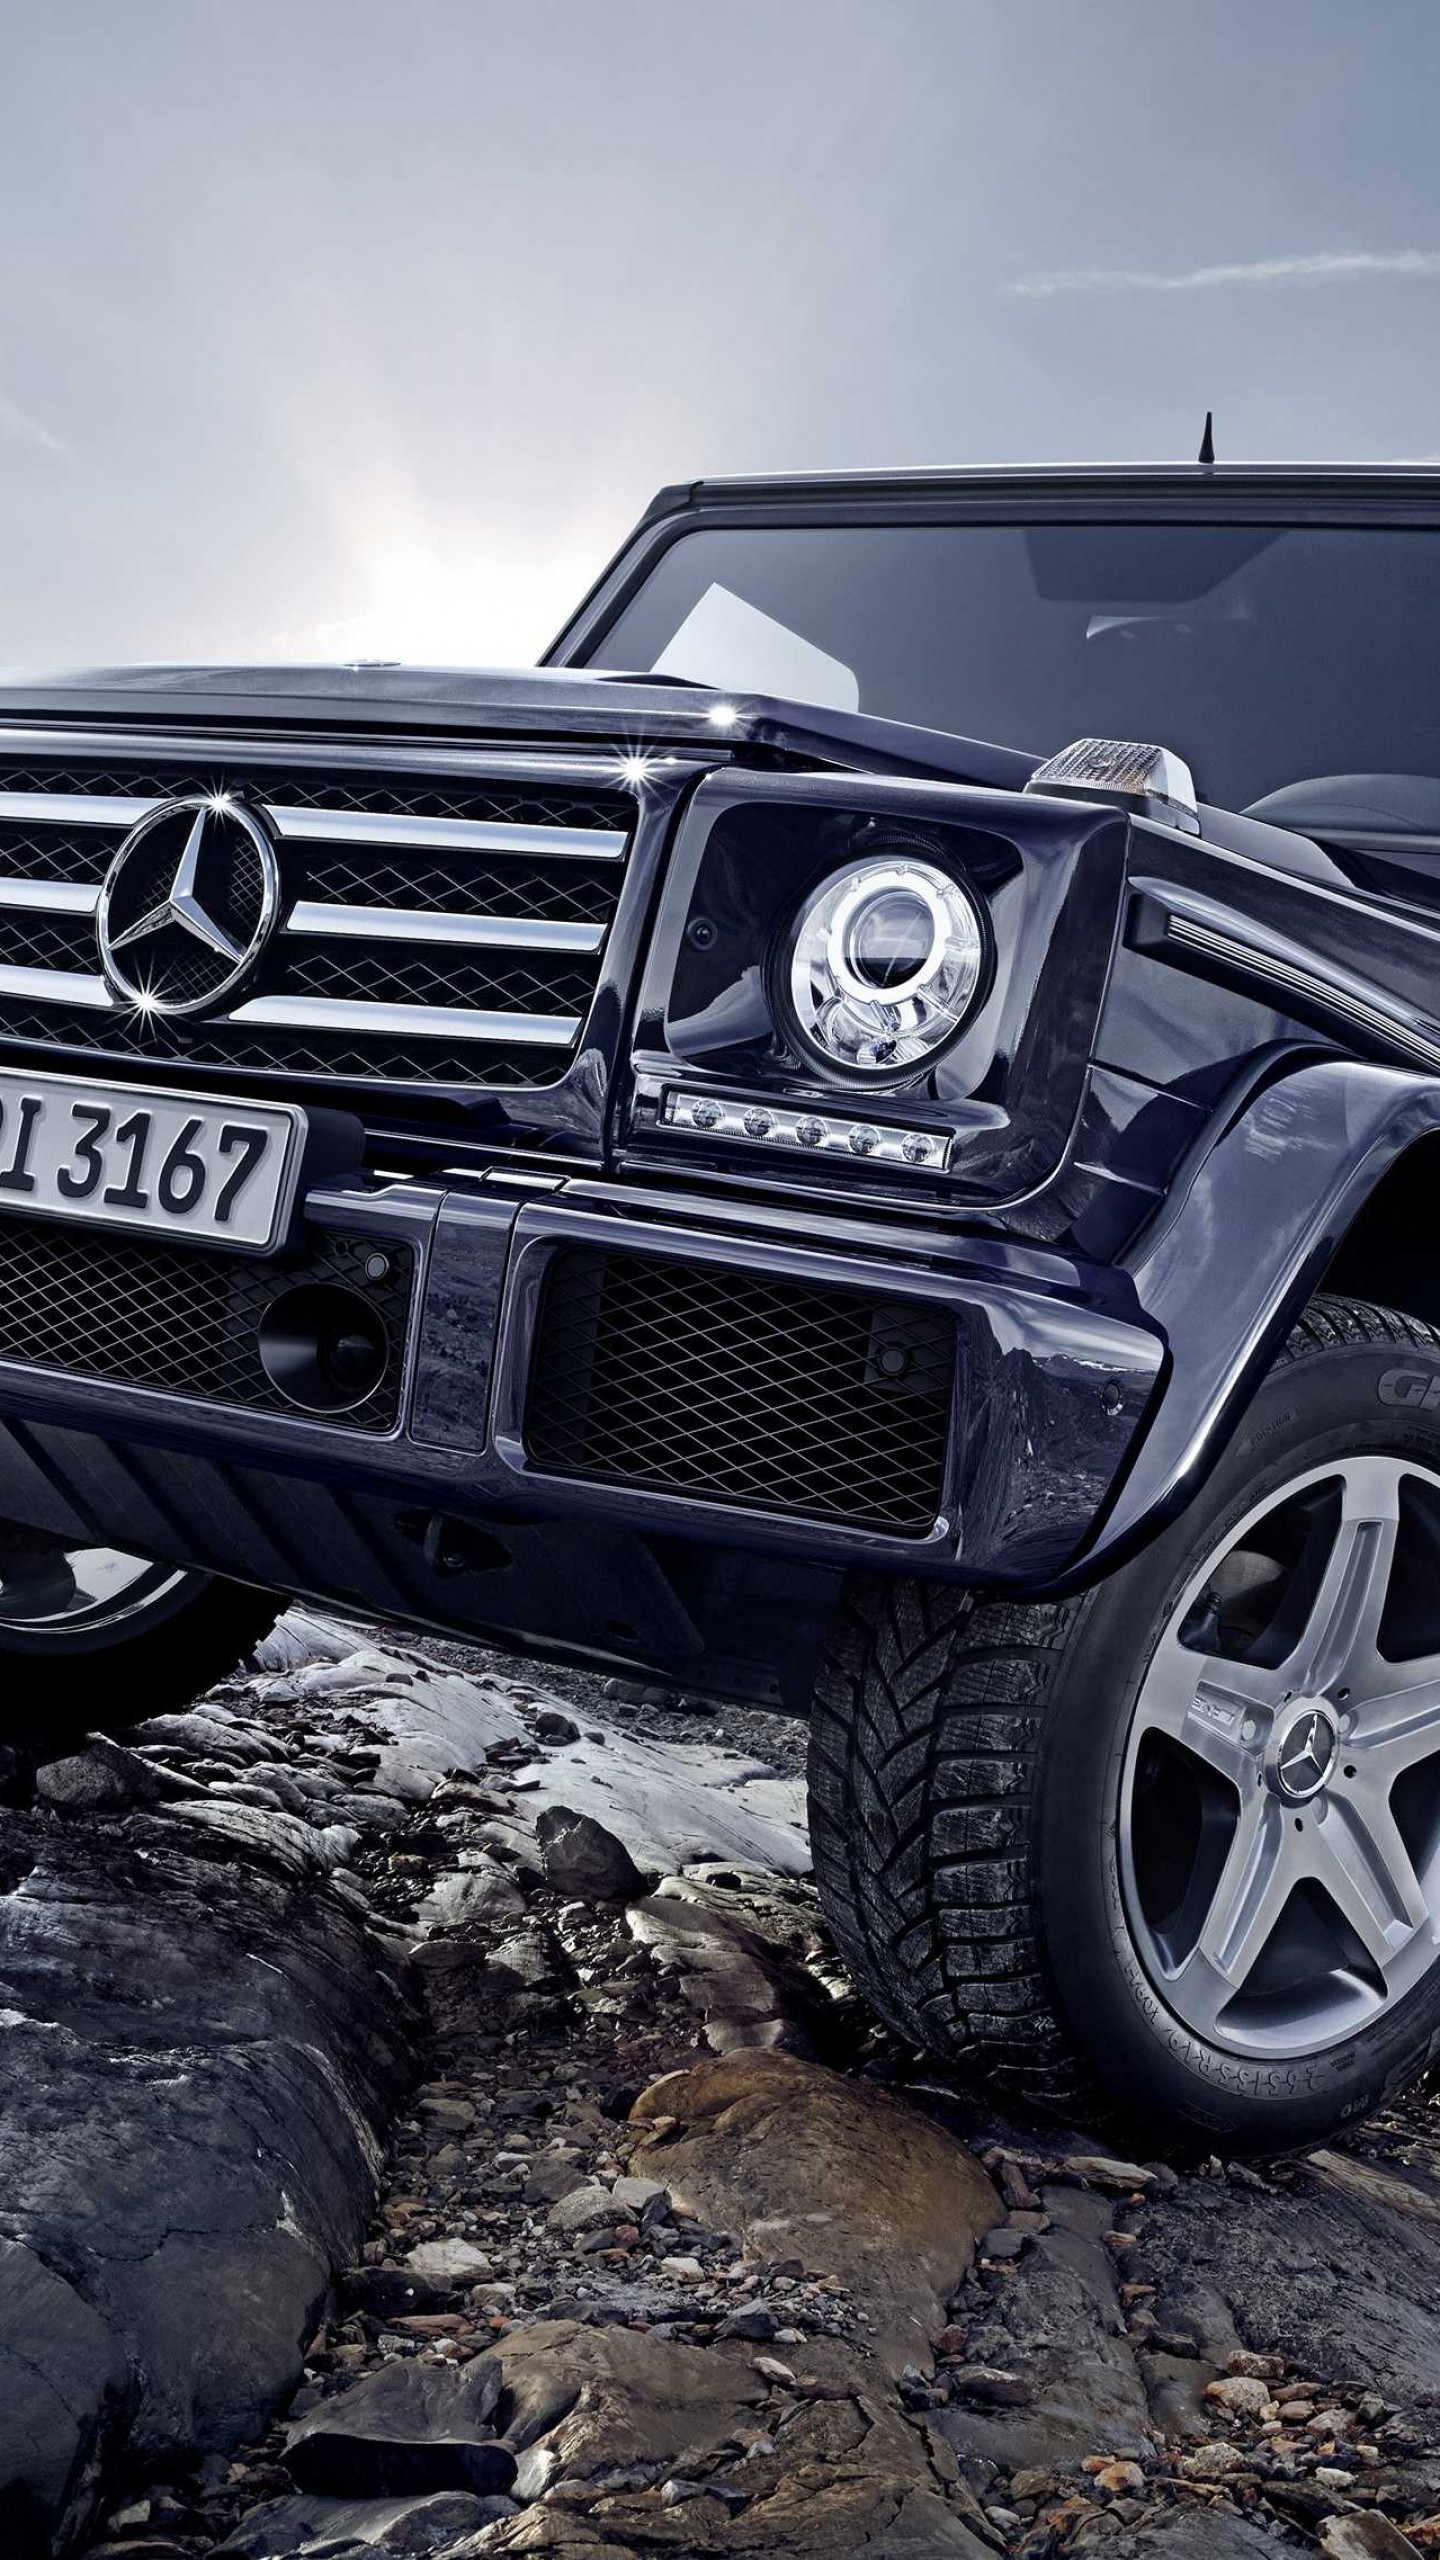 Wallpaper Mercedes Benz G 500 Suv Mercedes G Class Off Road Black Luxury Cars Cars Bikes 7472